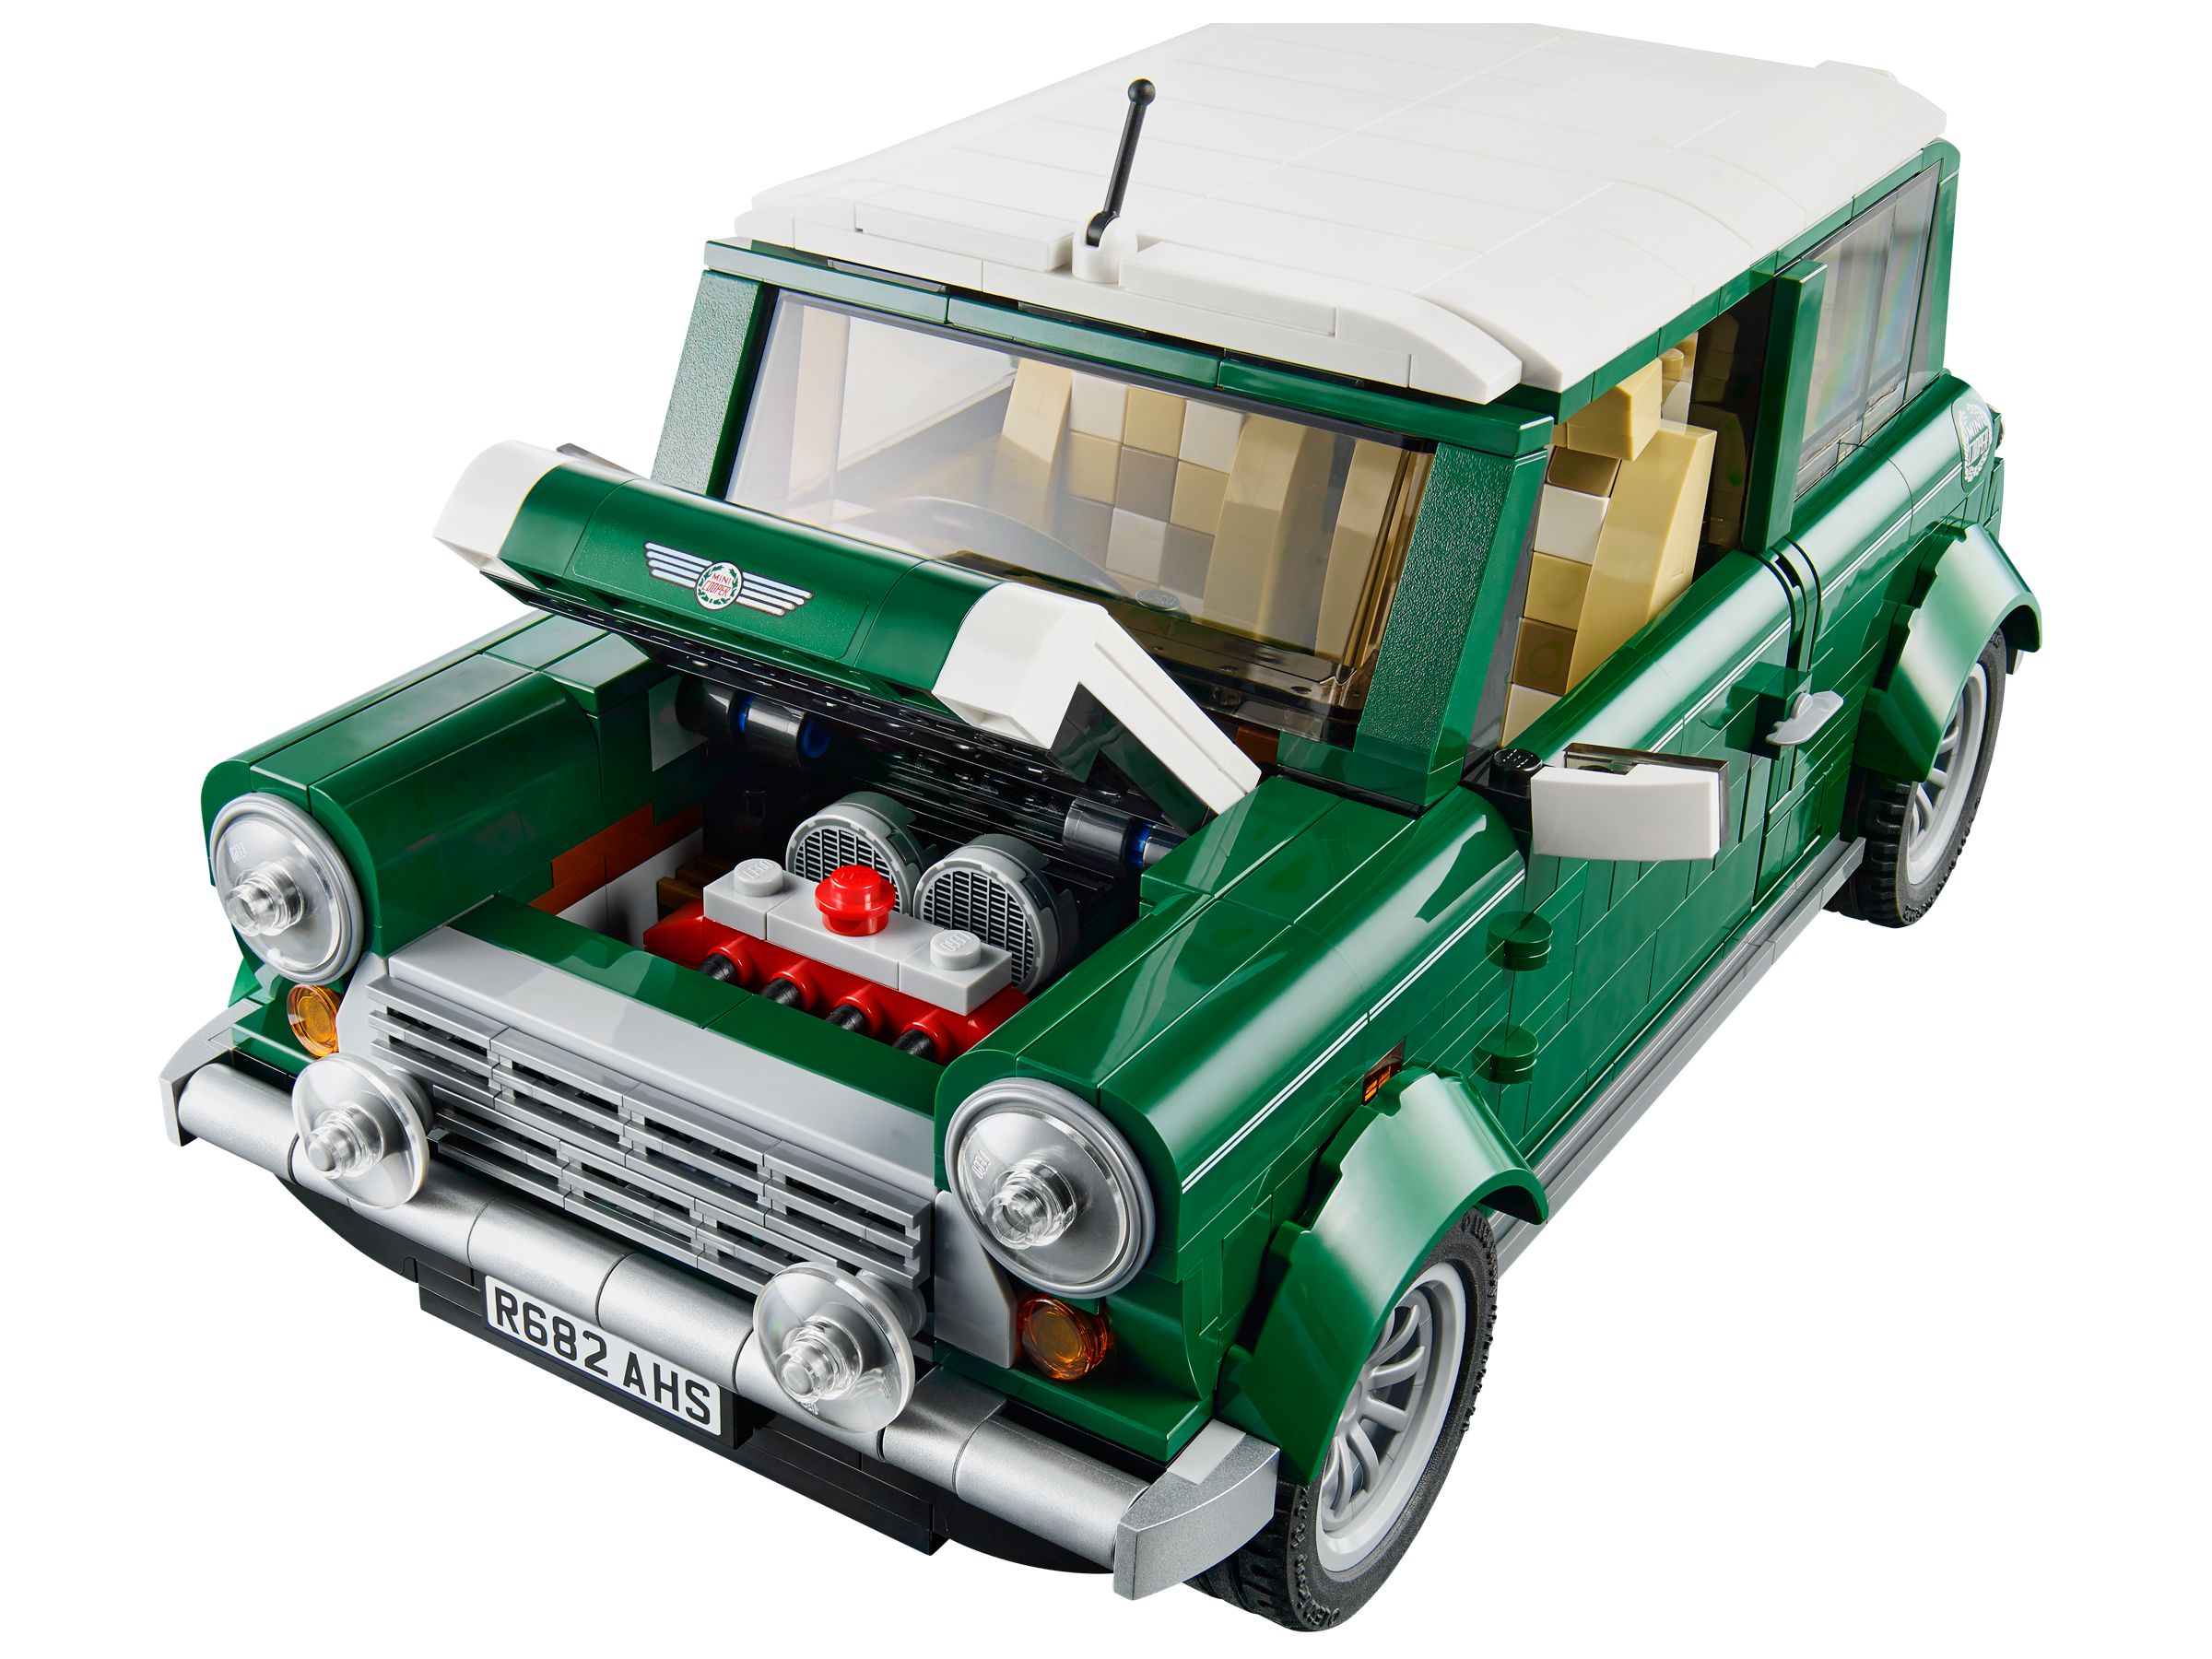 LEGO Advanced Models 10242 MINI Cooper LEGO_10242_alt3.jpg